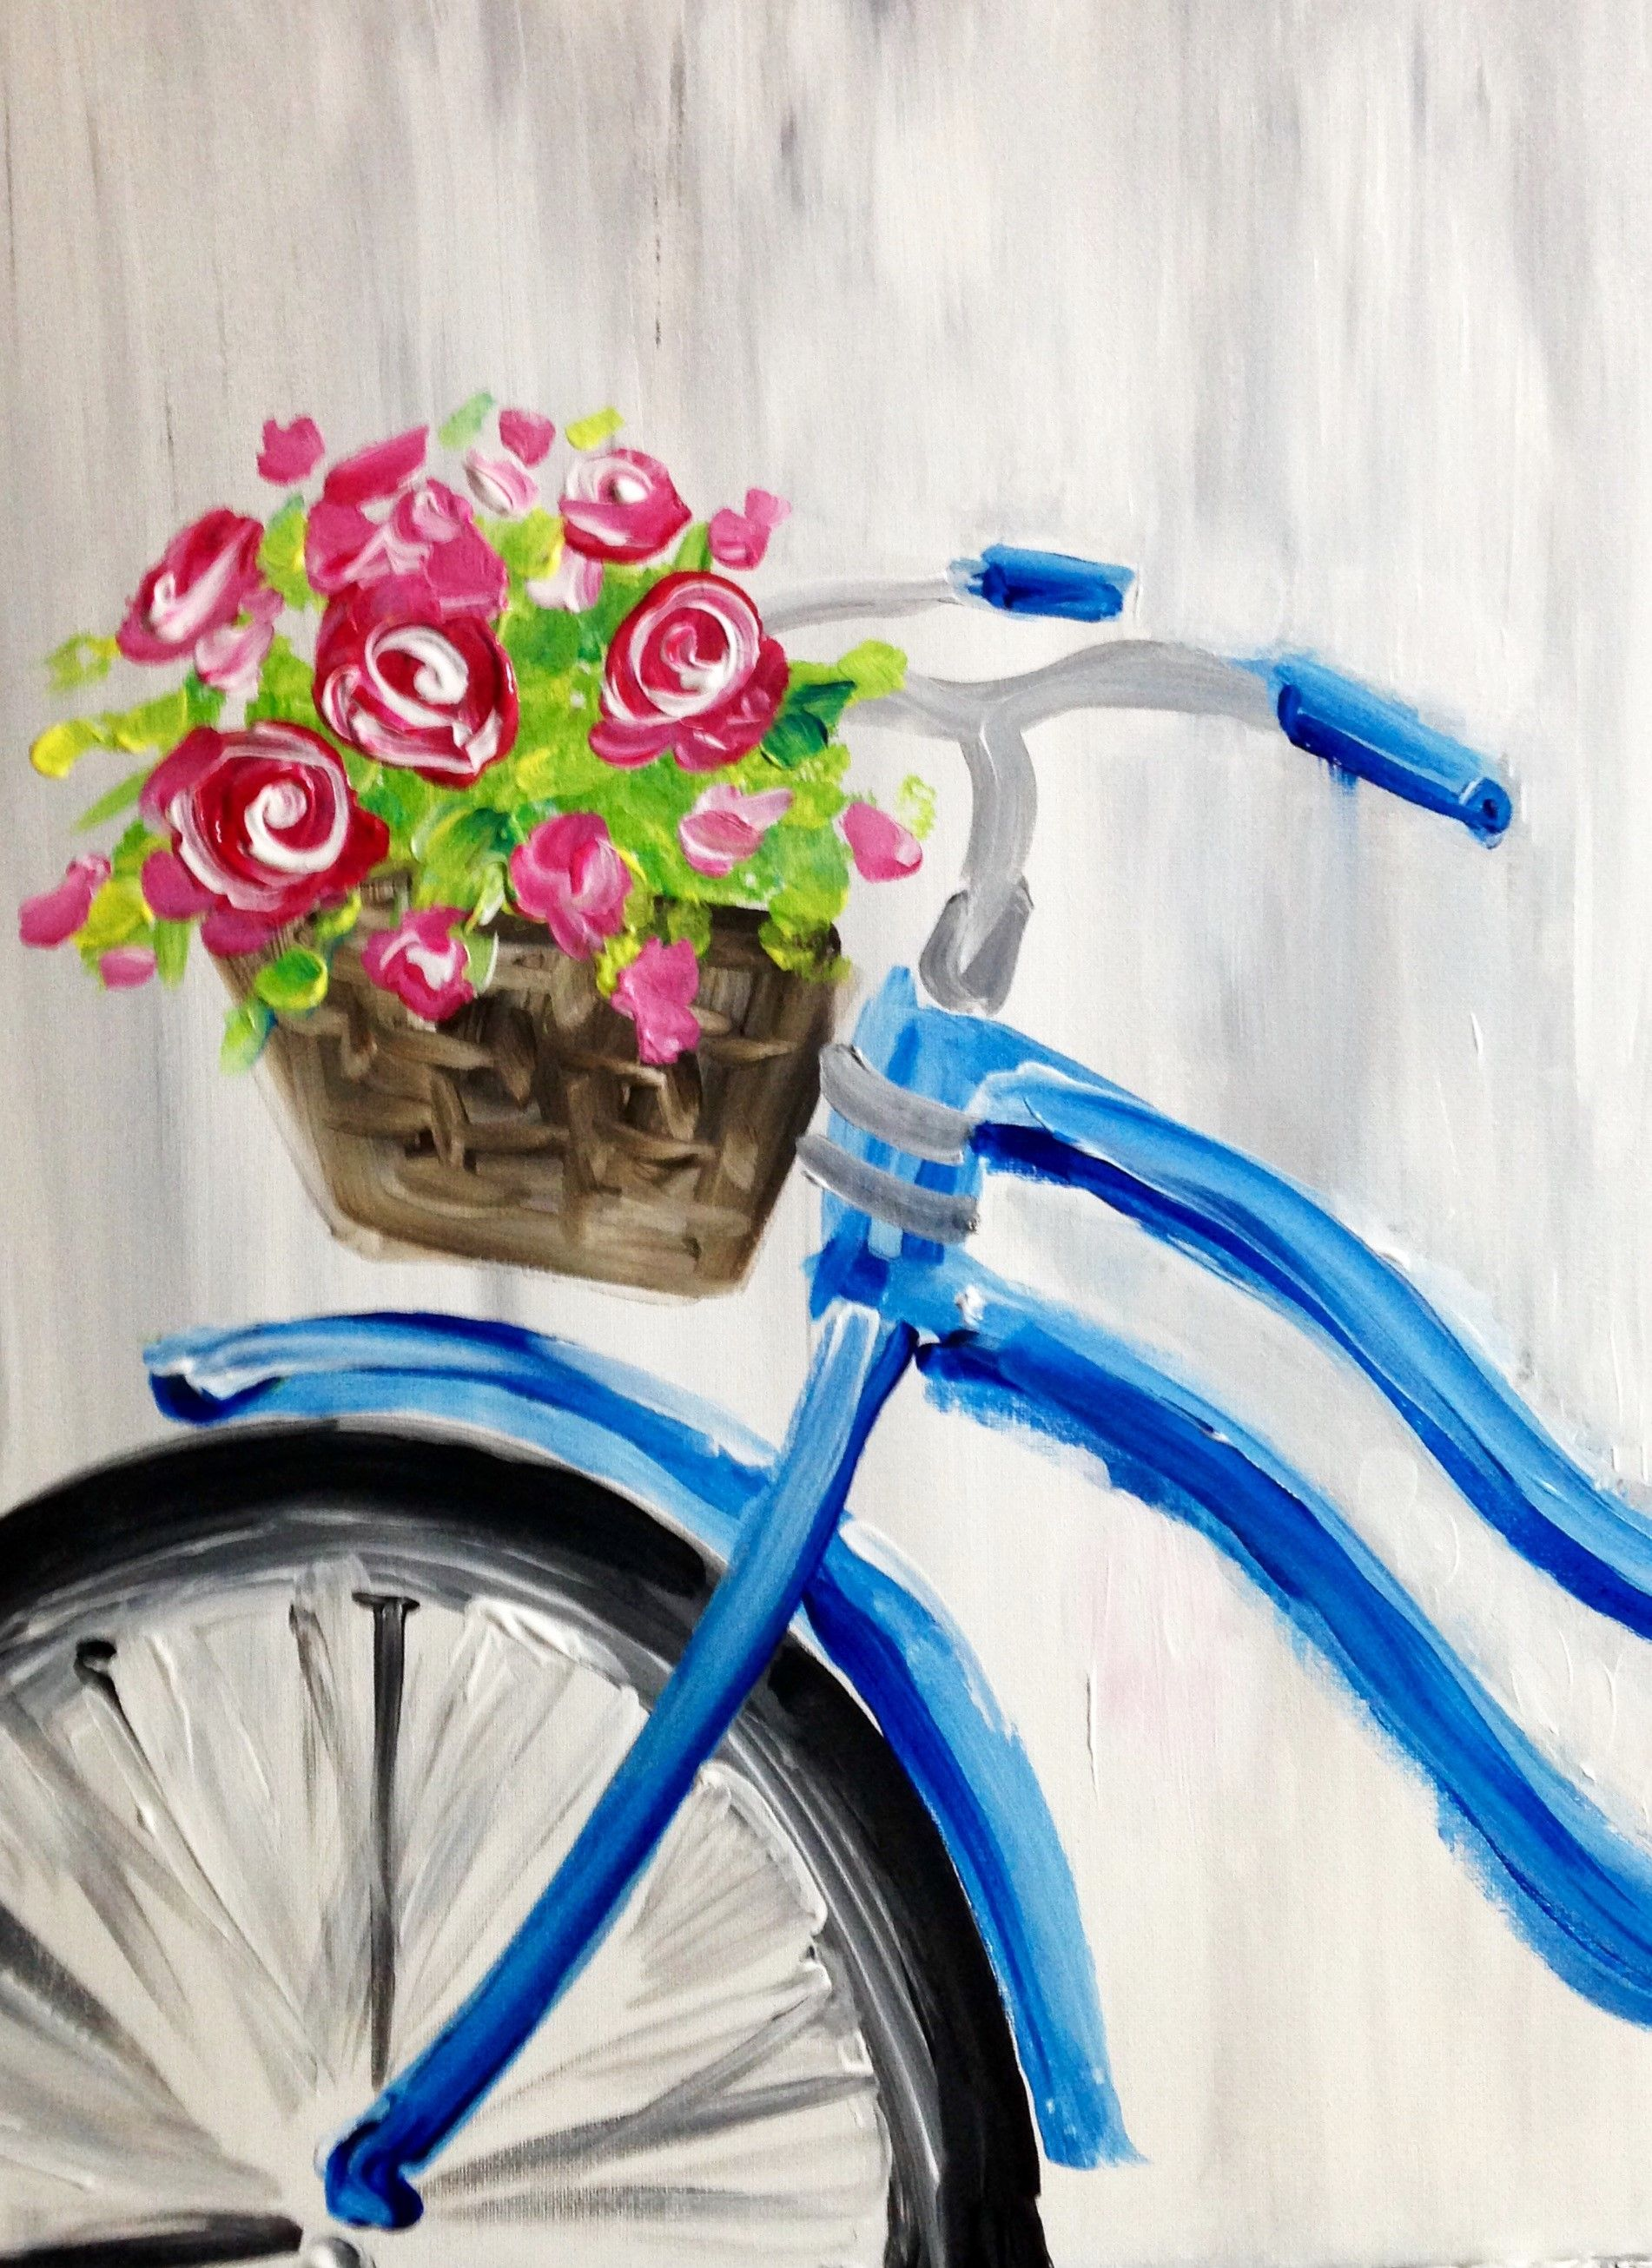 Arte Johnson On Bike Paint Nite Drink Paint Party We Host Painting Events At Local